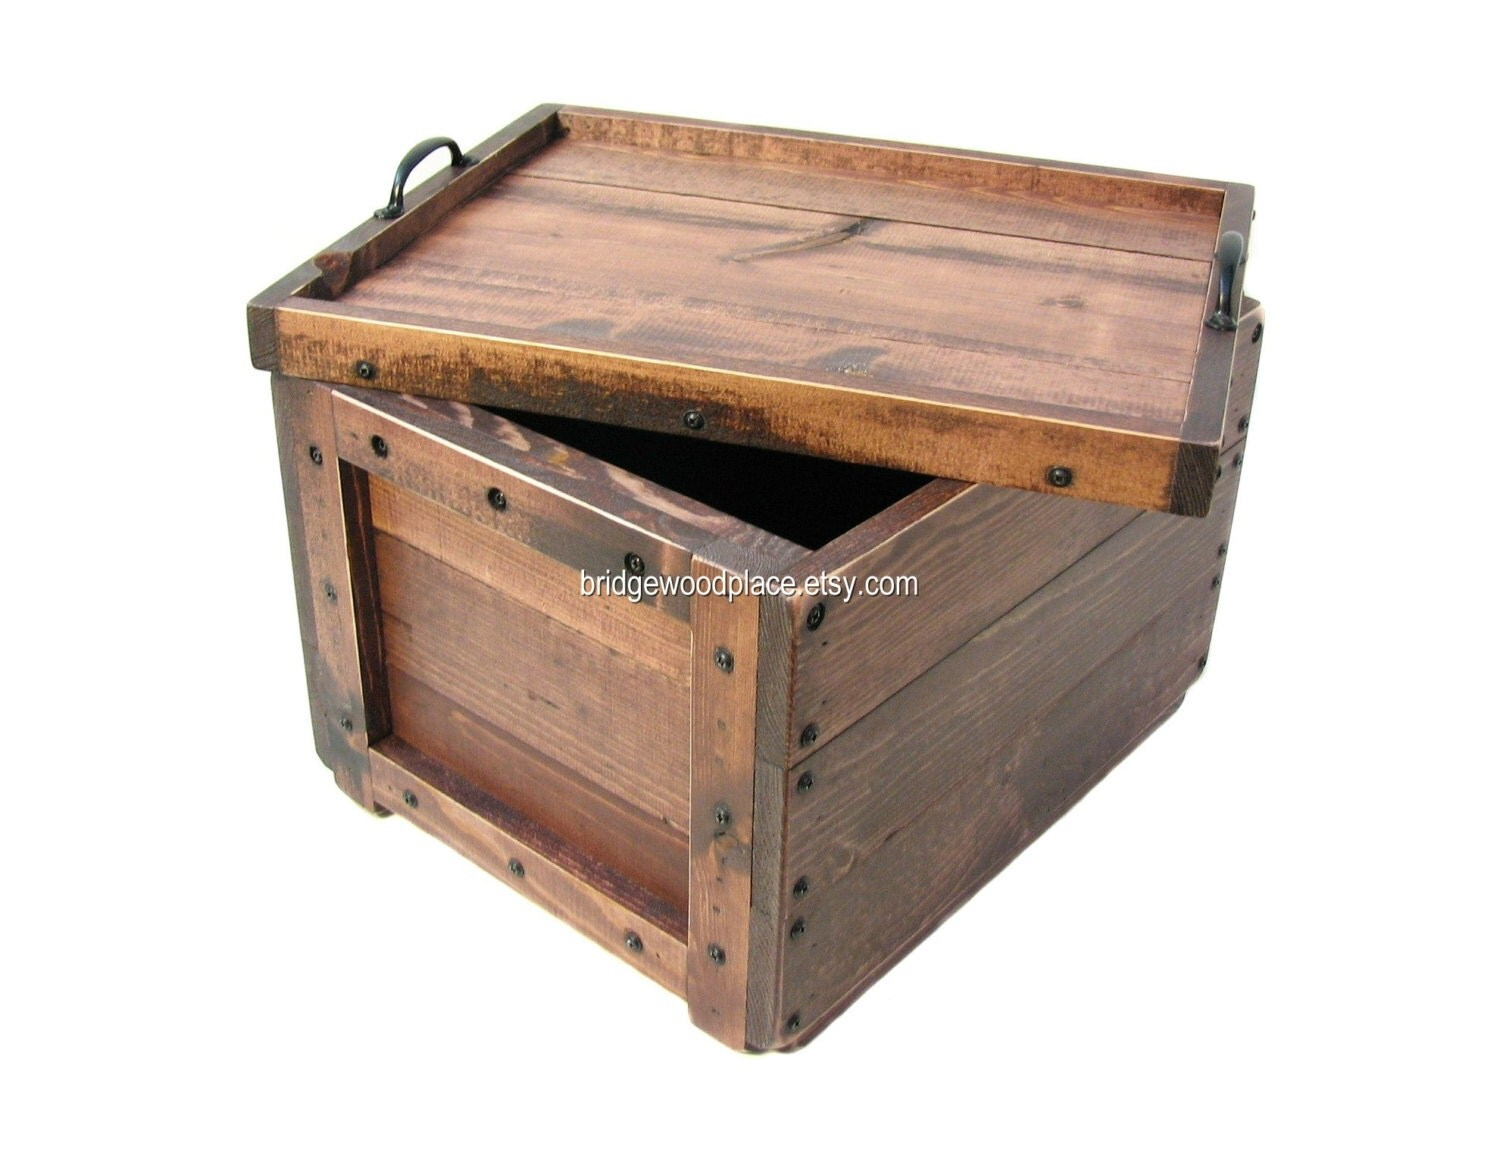 Lidded wood crate wooden box with lid keepsake by bridgewoodplace Wooden crates furniture